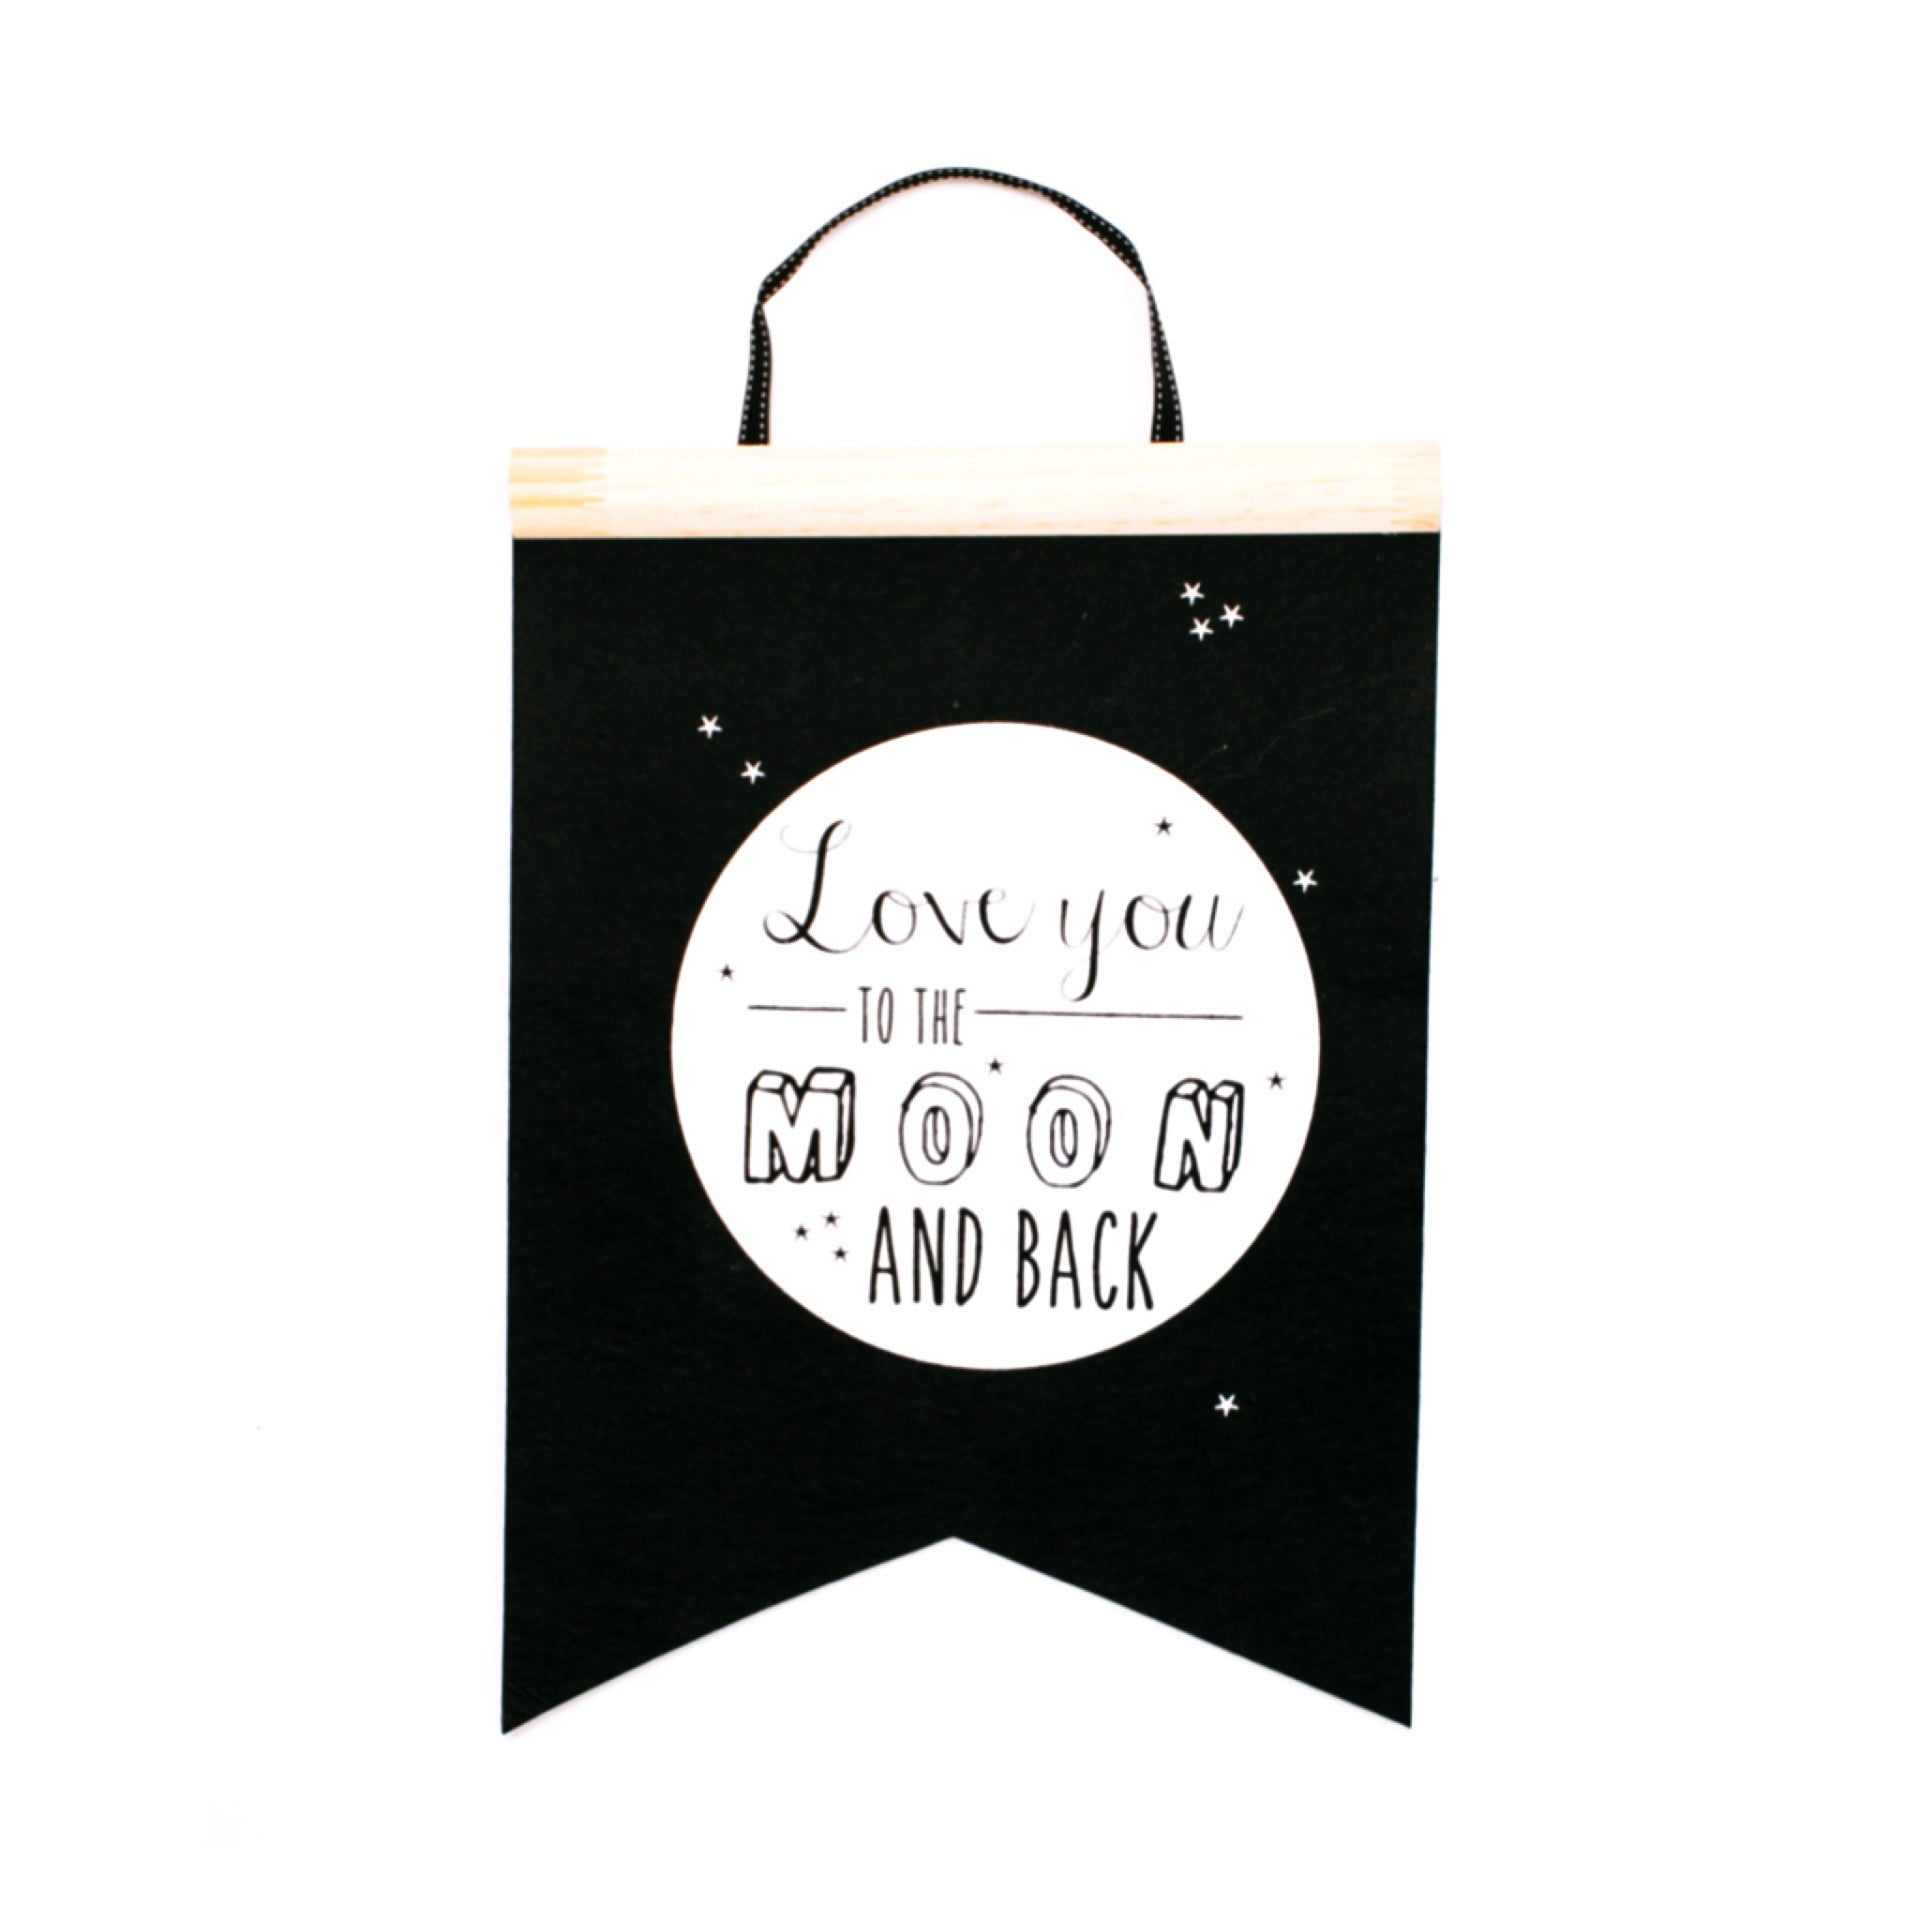 To the Moon and Back Felt Flag | BE QUICK! LAST ONE